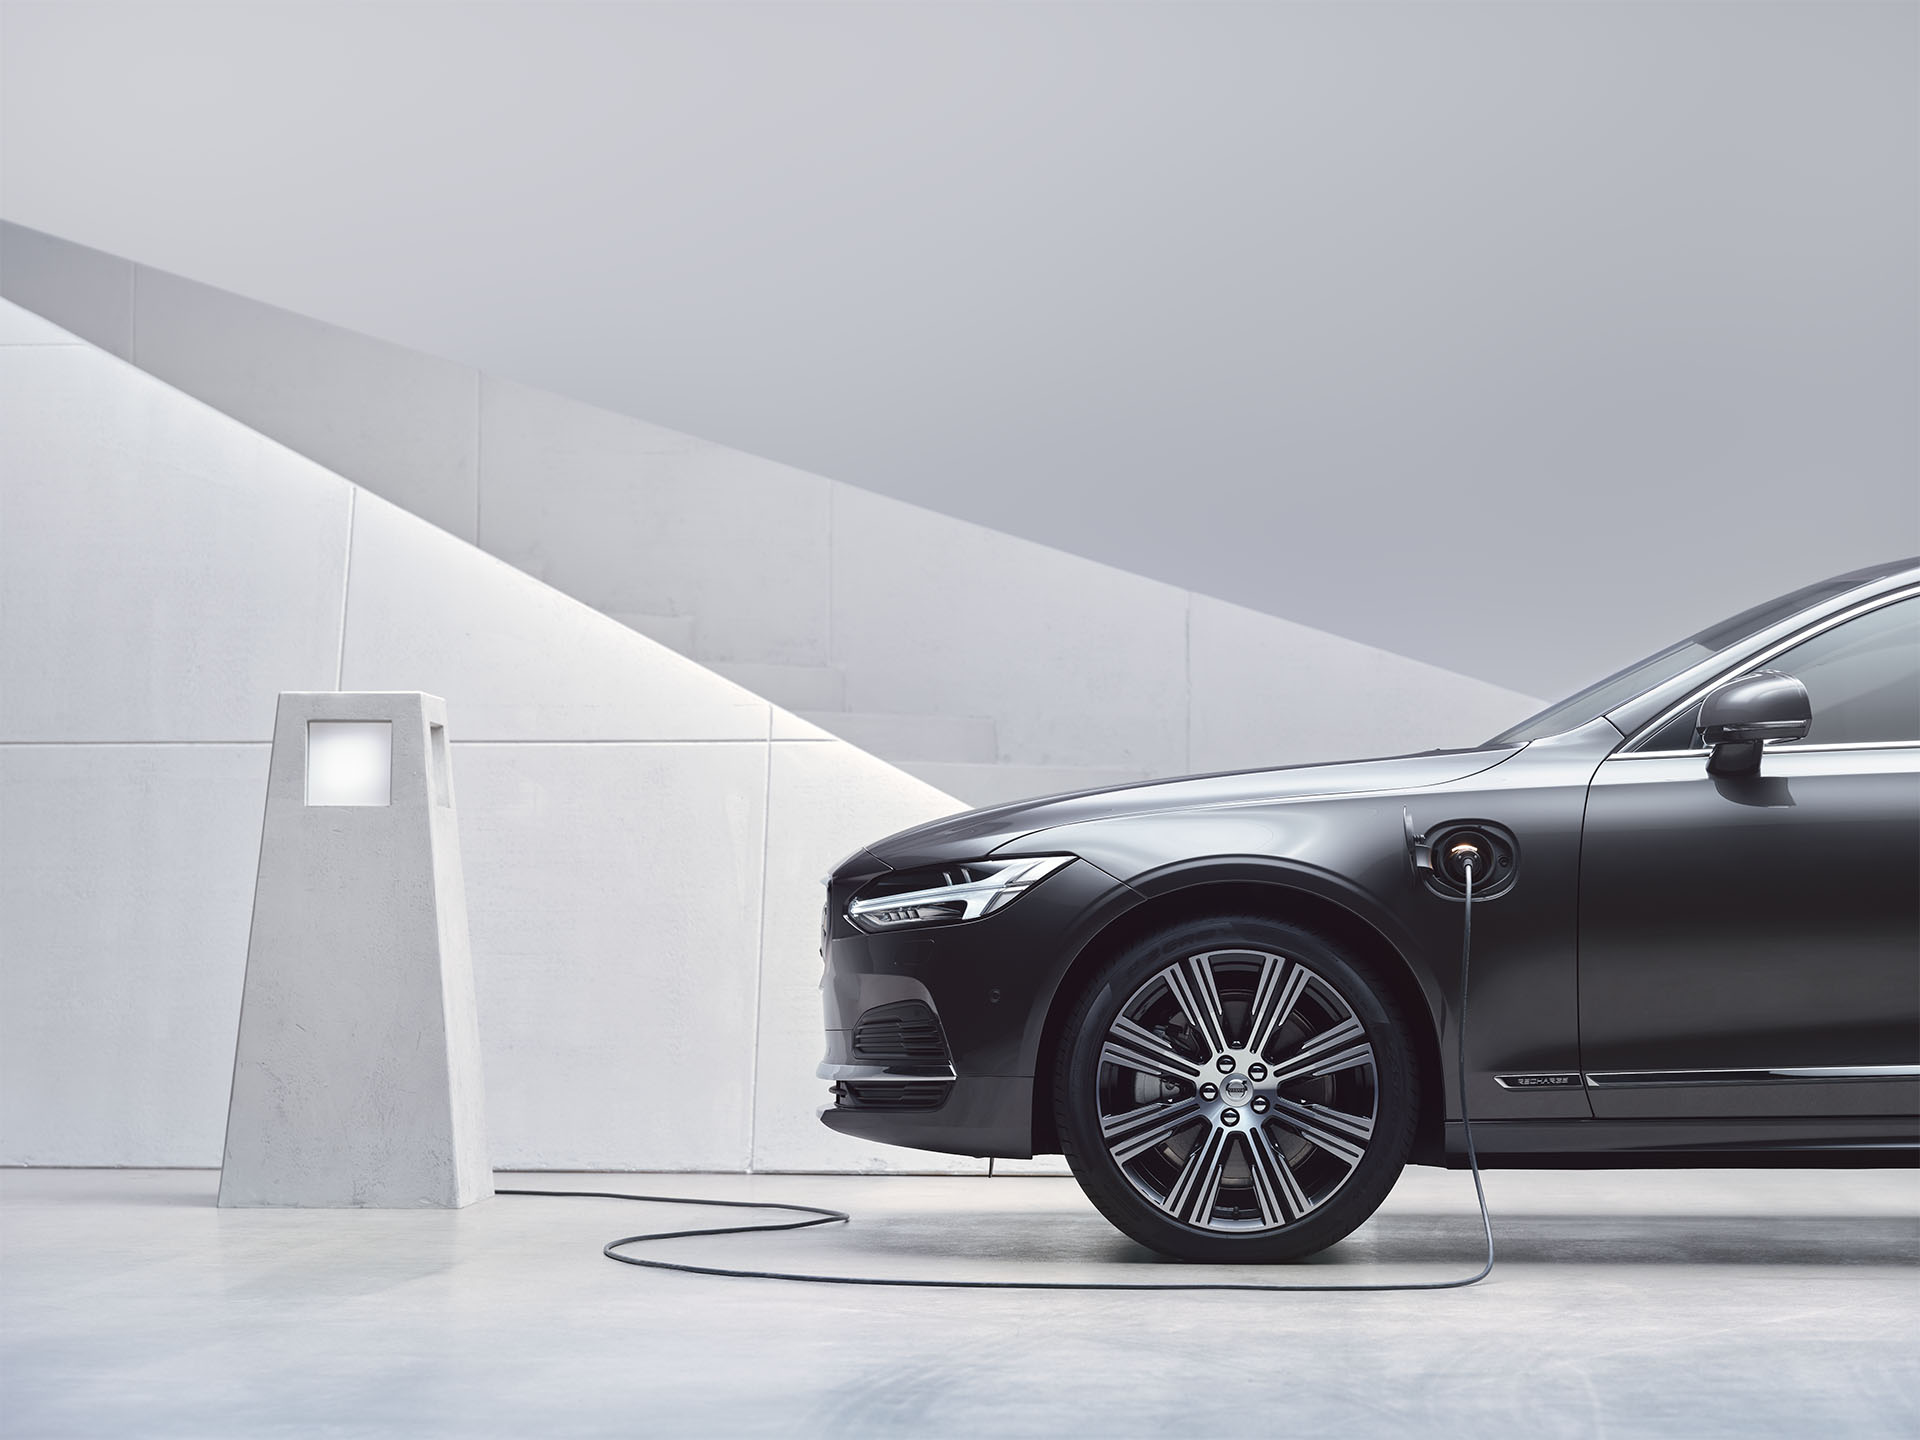 S90 Recharege Plug-in hybrid